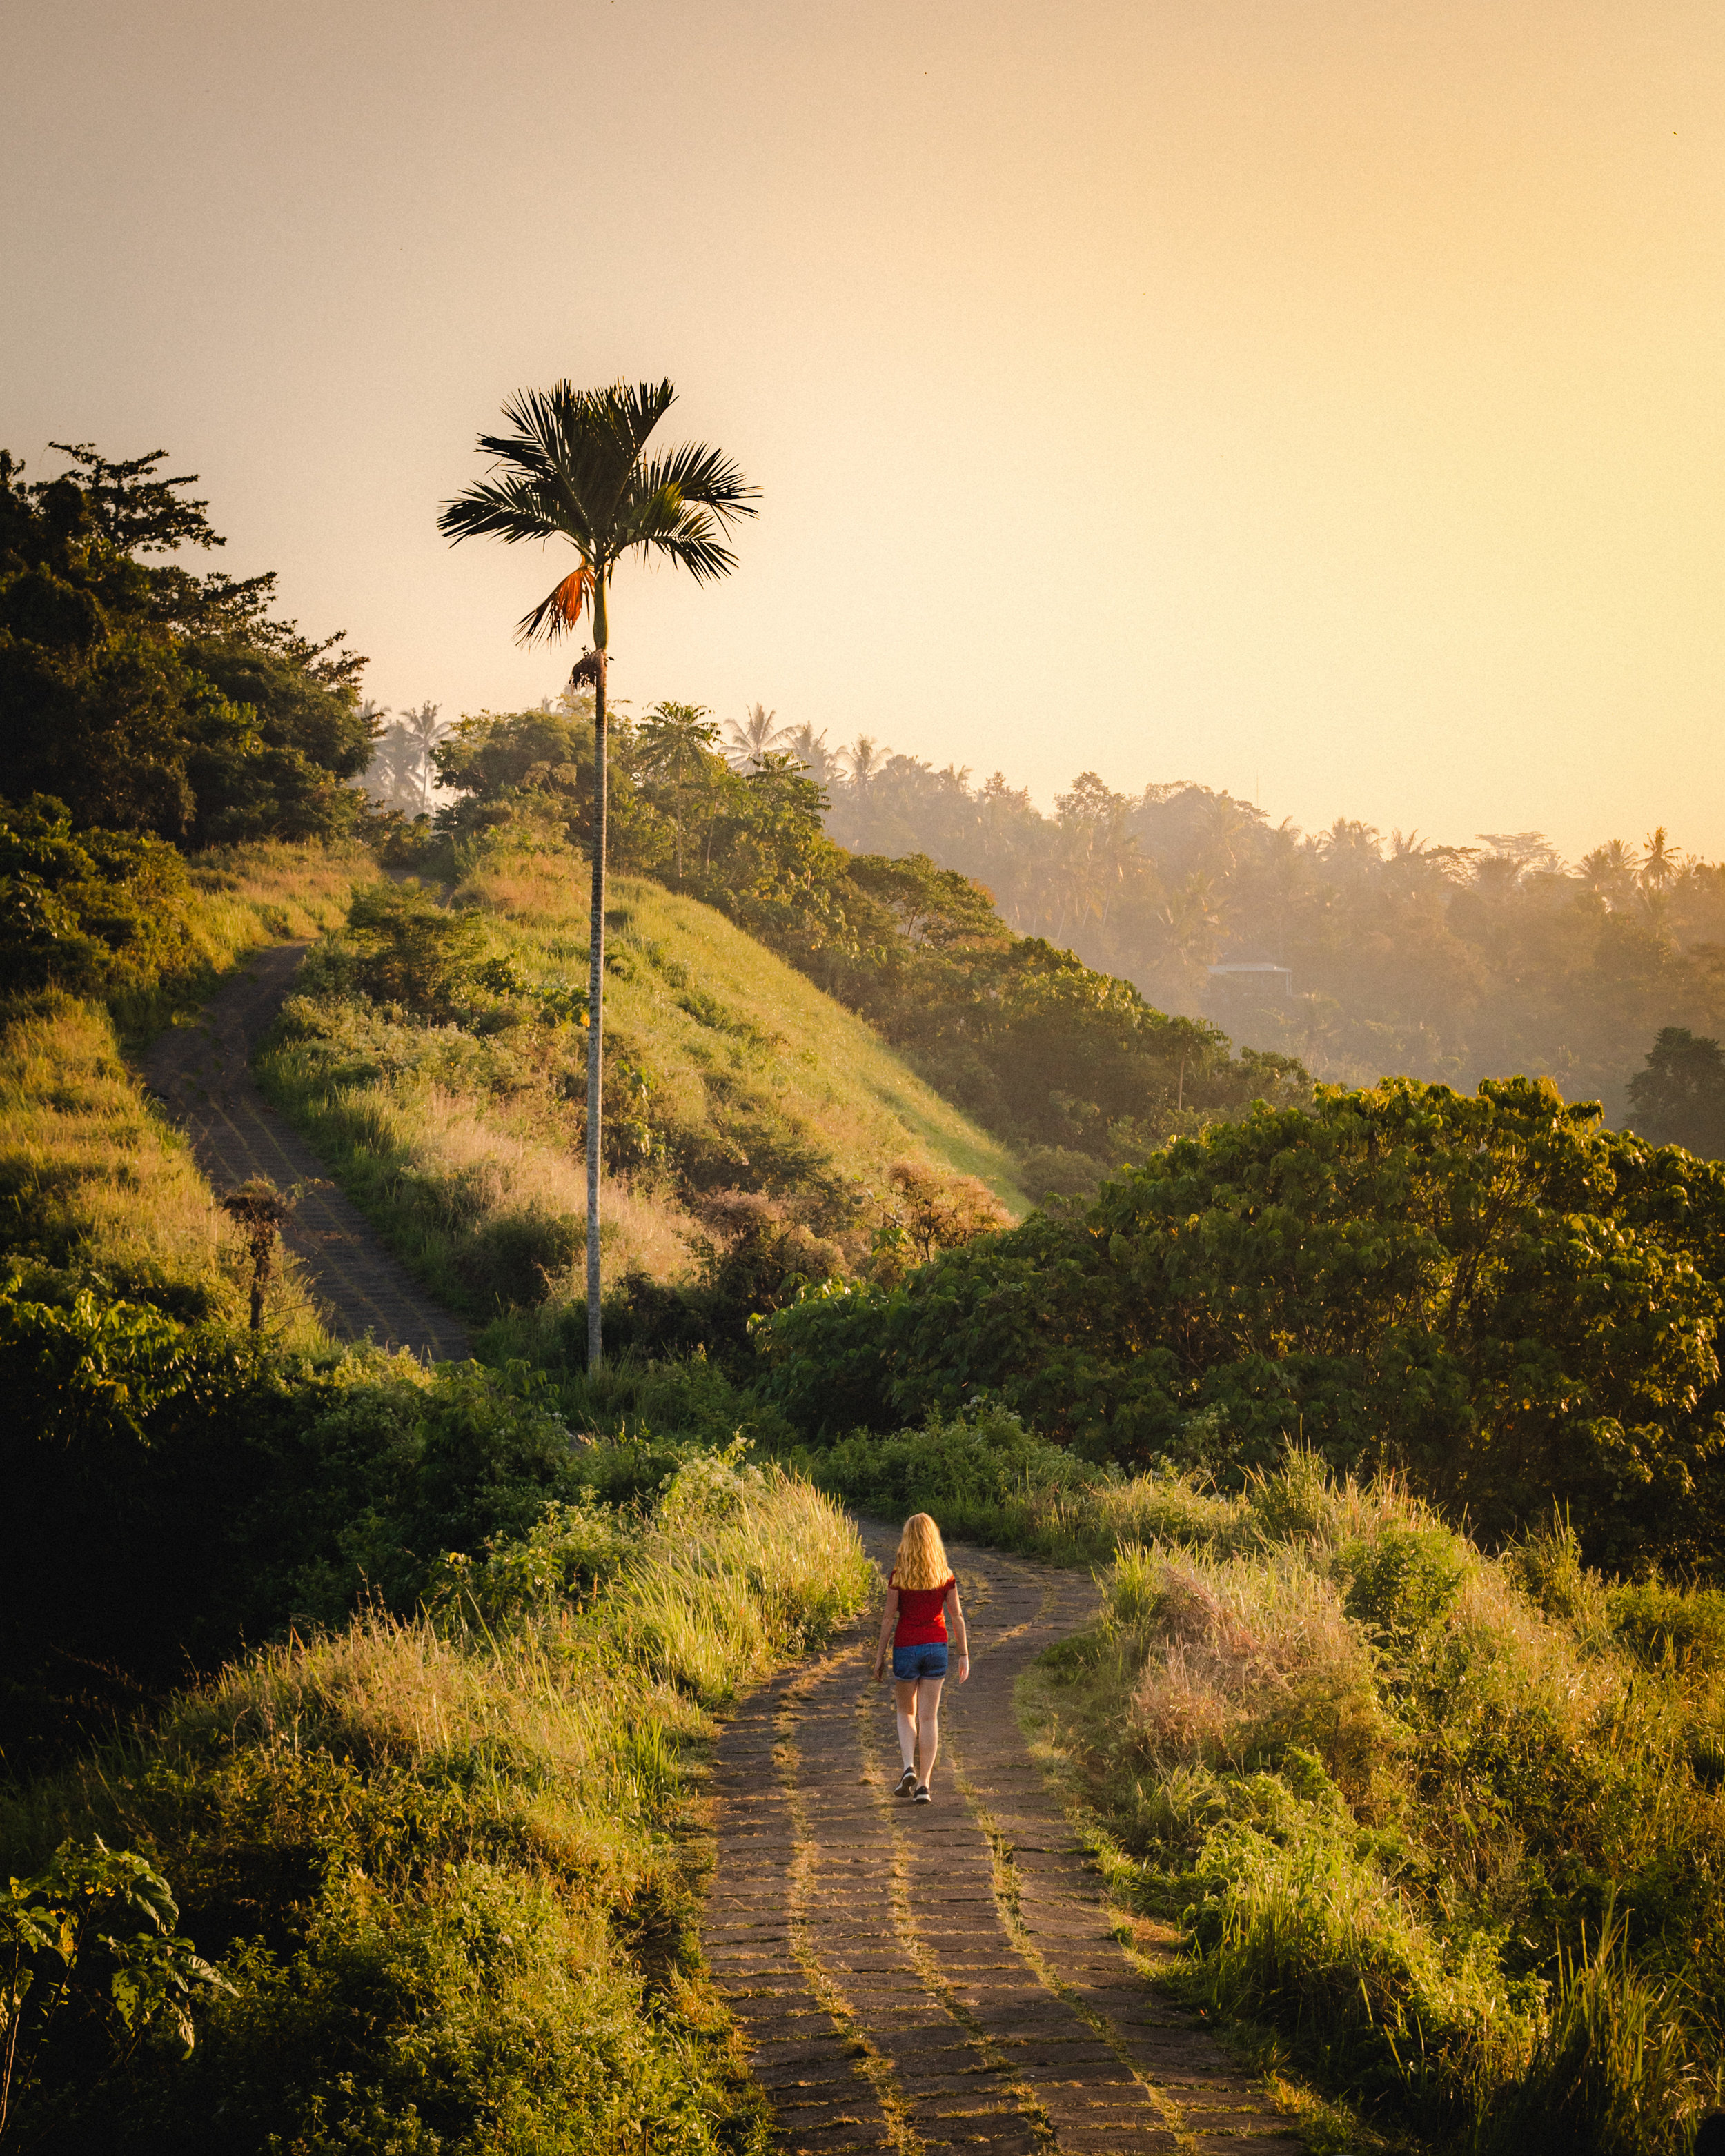 Campuhan Ridge - Instagrammable places in Bali